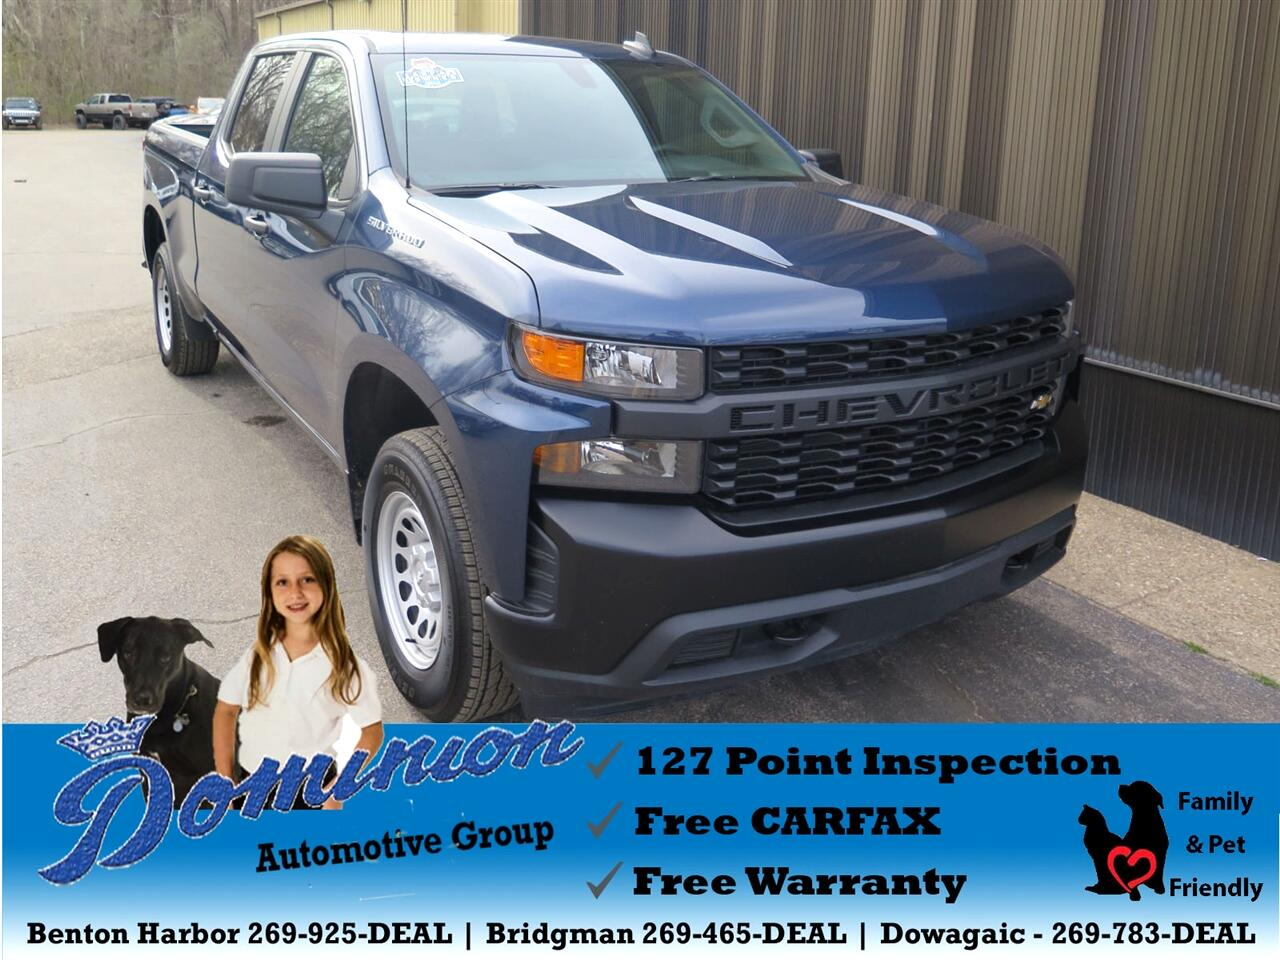 2019 Chevrolet Silverado 1500 Work Truck Crew Cab Long Box 4WD